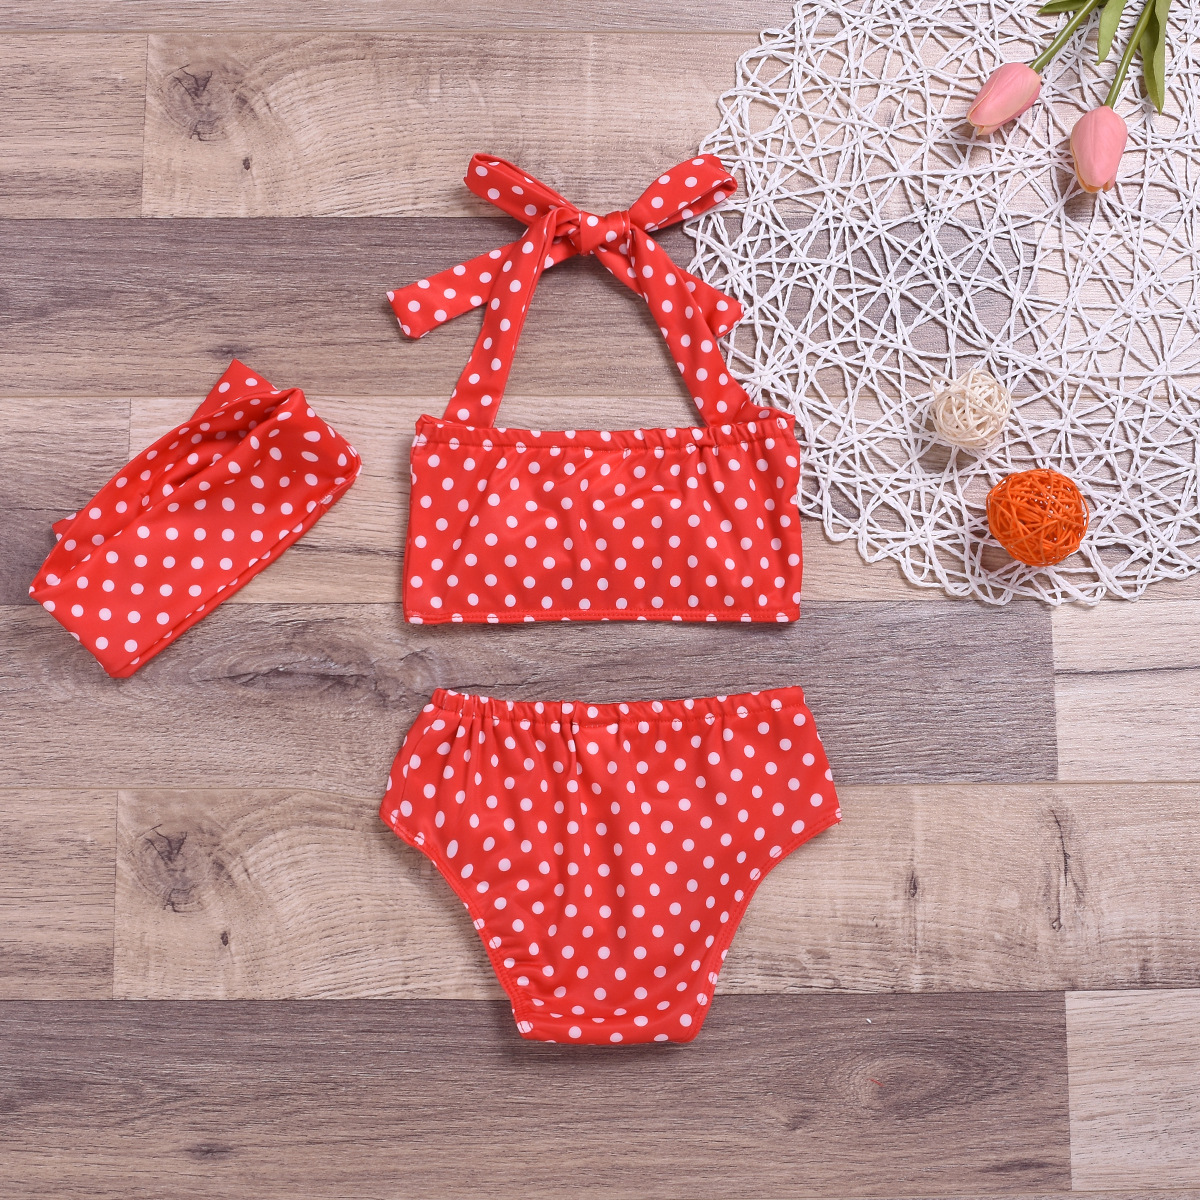 Baby Girl Baby Bathing Suit Swimwear Red Polka Dot Bikini Set And Headband With 3-Piece